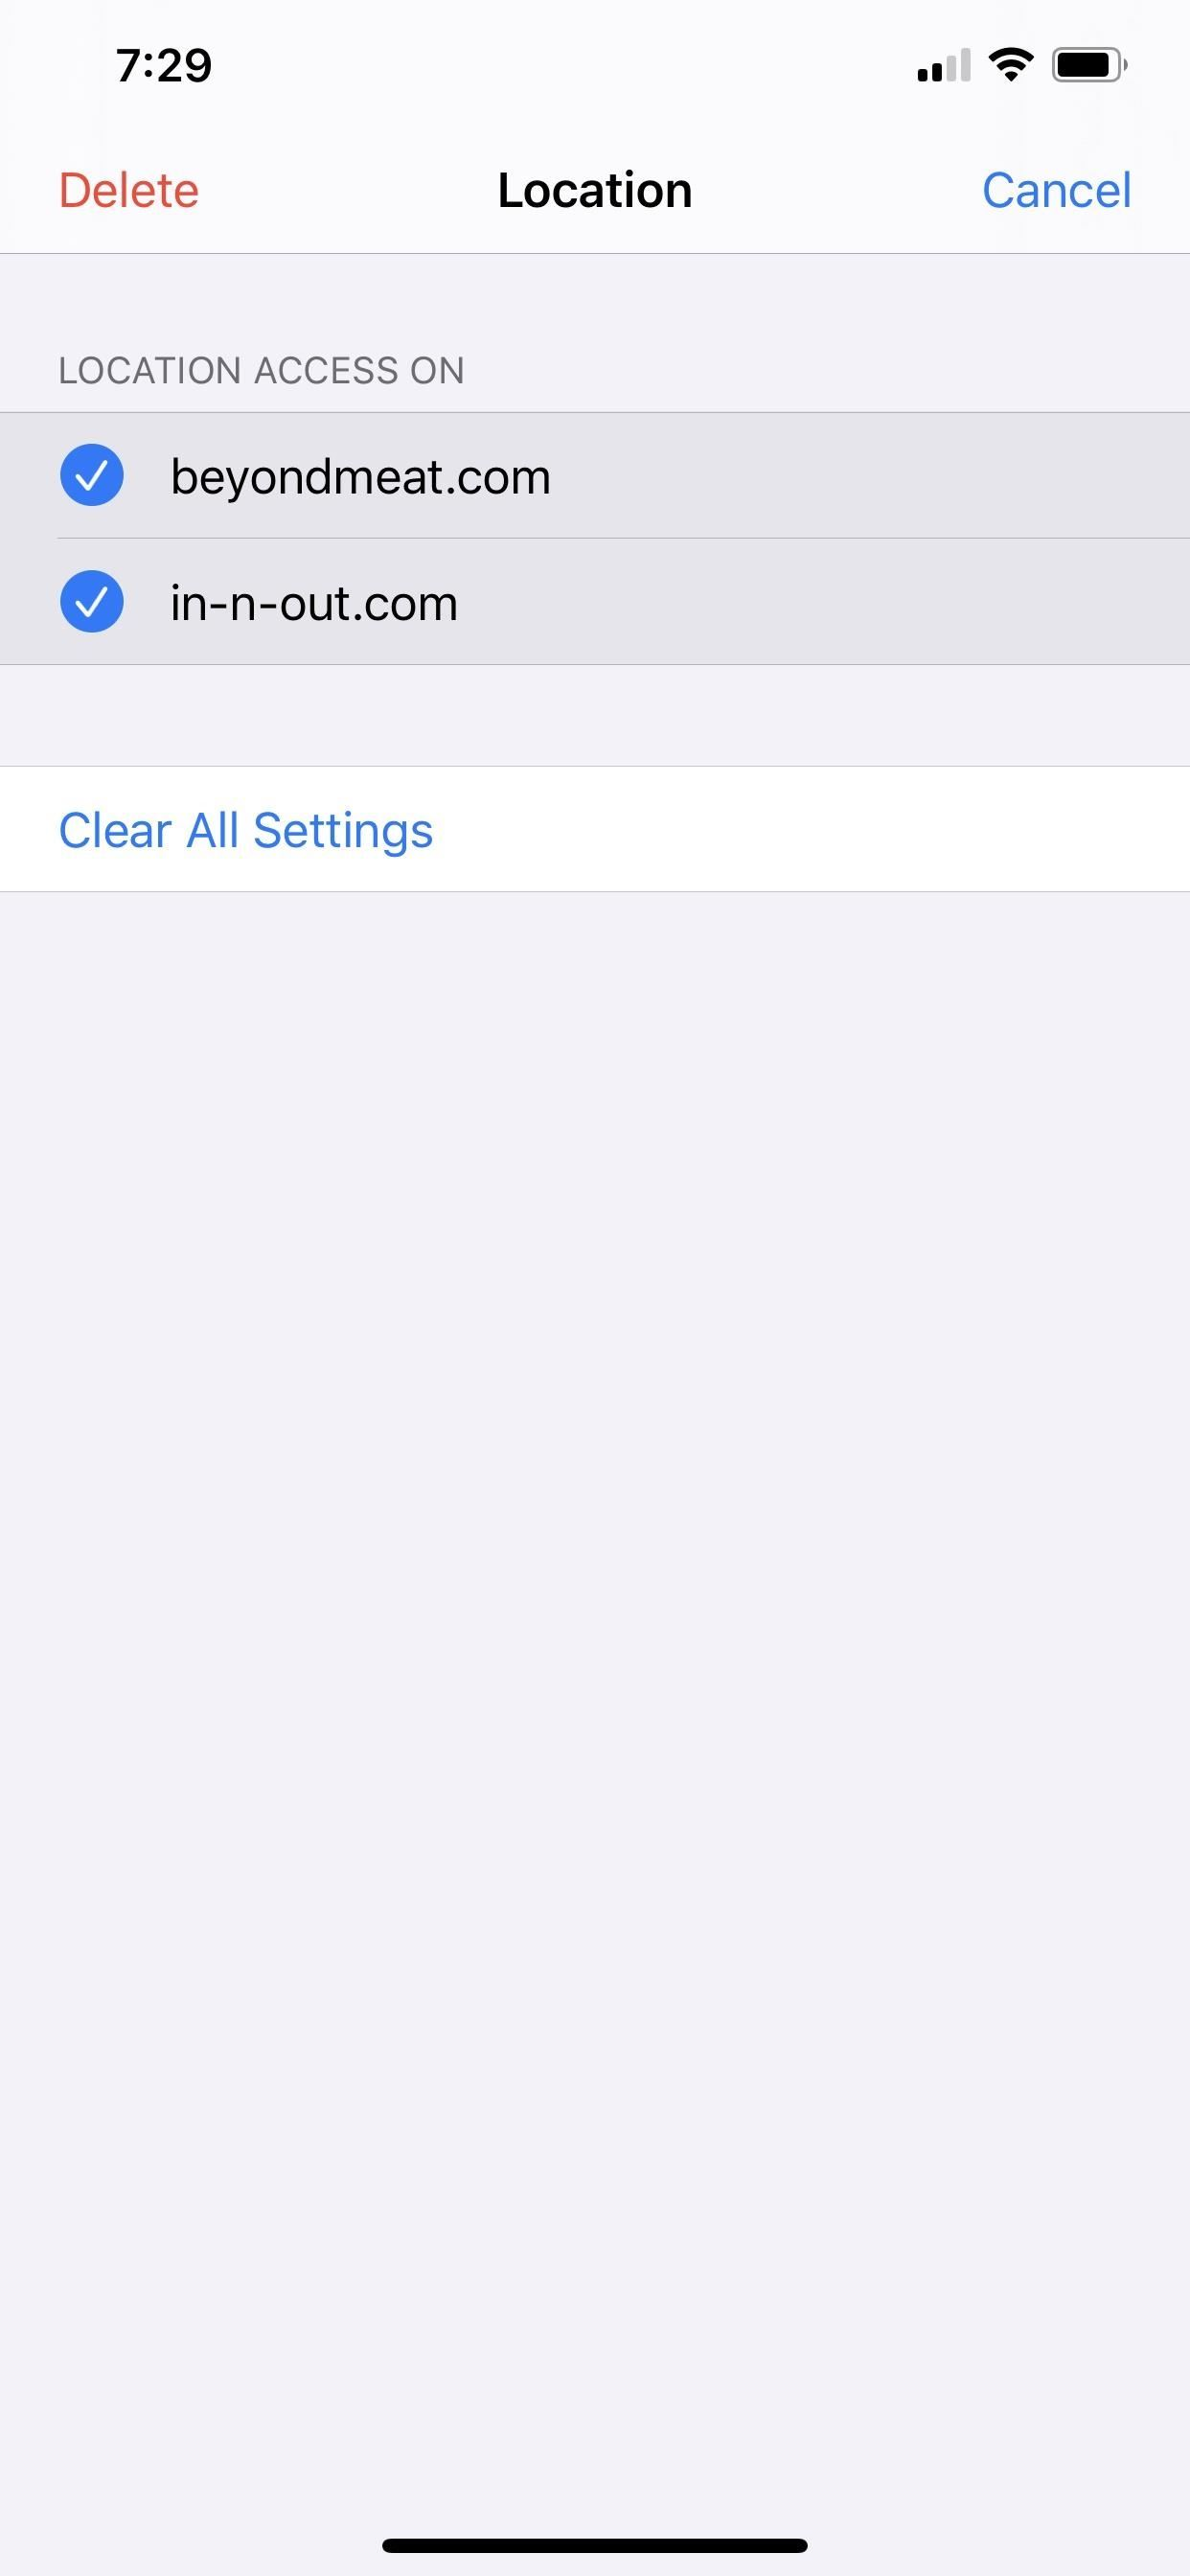 How to Customize Camera, Microphone & Location Permissions for Specific Websites in iOS 13's Safari